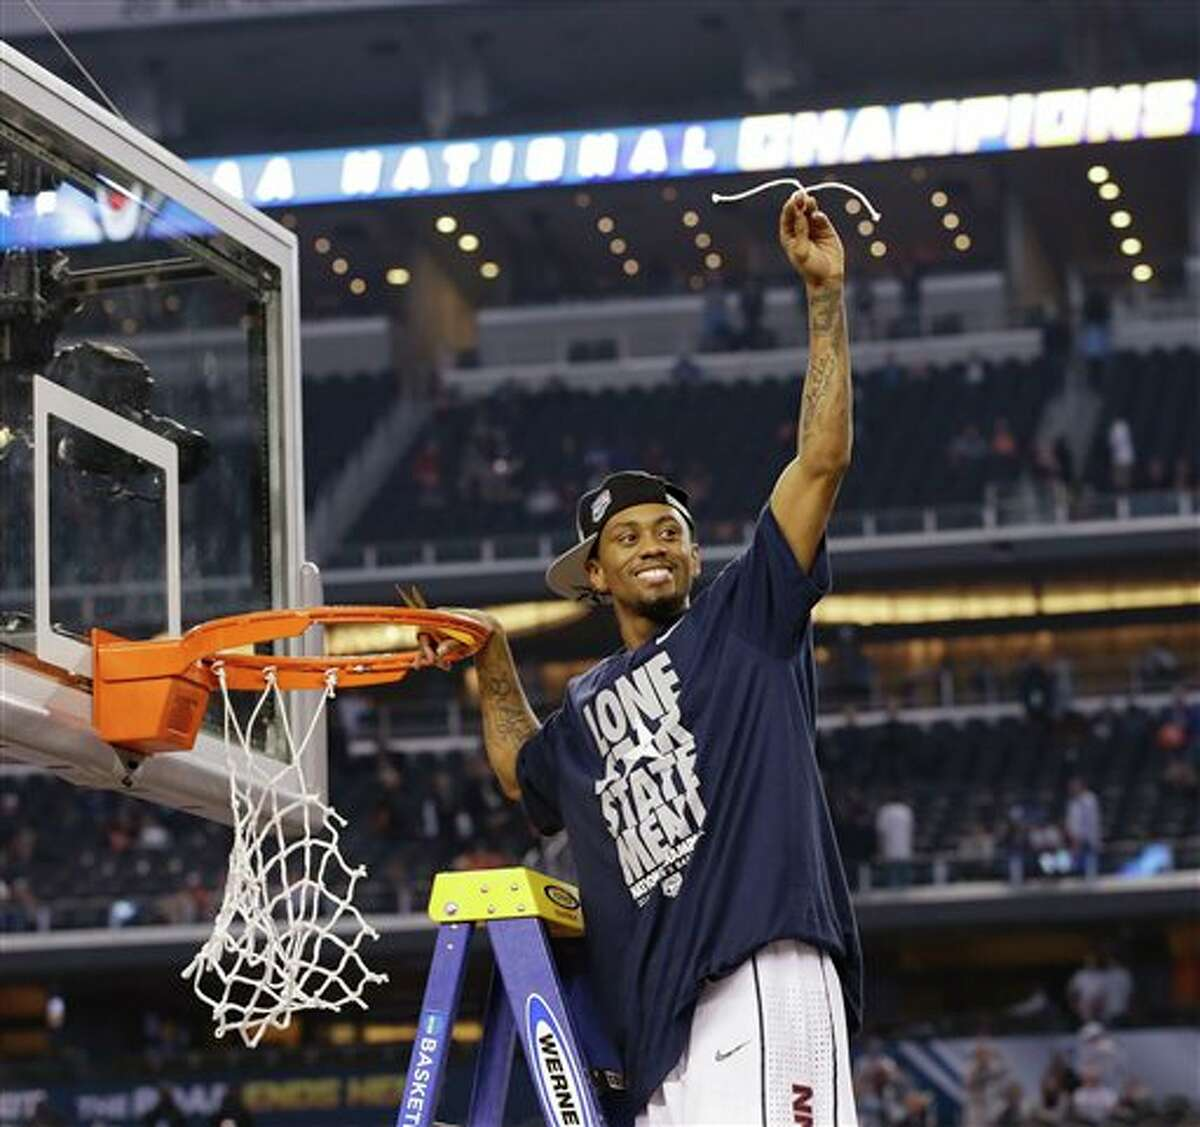 Connecticut guard Ryan Boatright cuts down the net after beating Kentucky 60-54, at the NCAA Final Four tournament college basketball championship game Monday, April 7, 2014, in Arlington, Texas. (AP Photo/David J. Phillip)